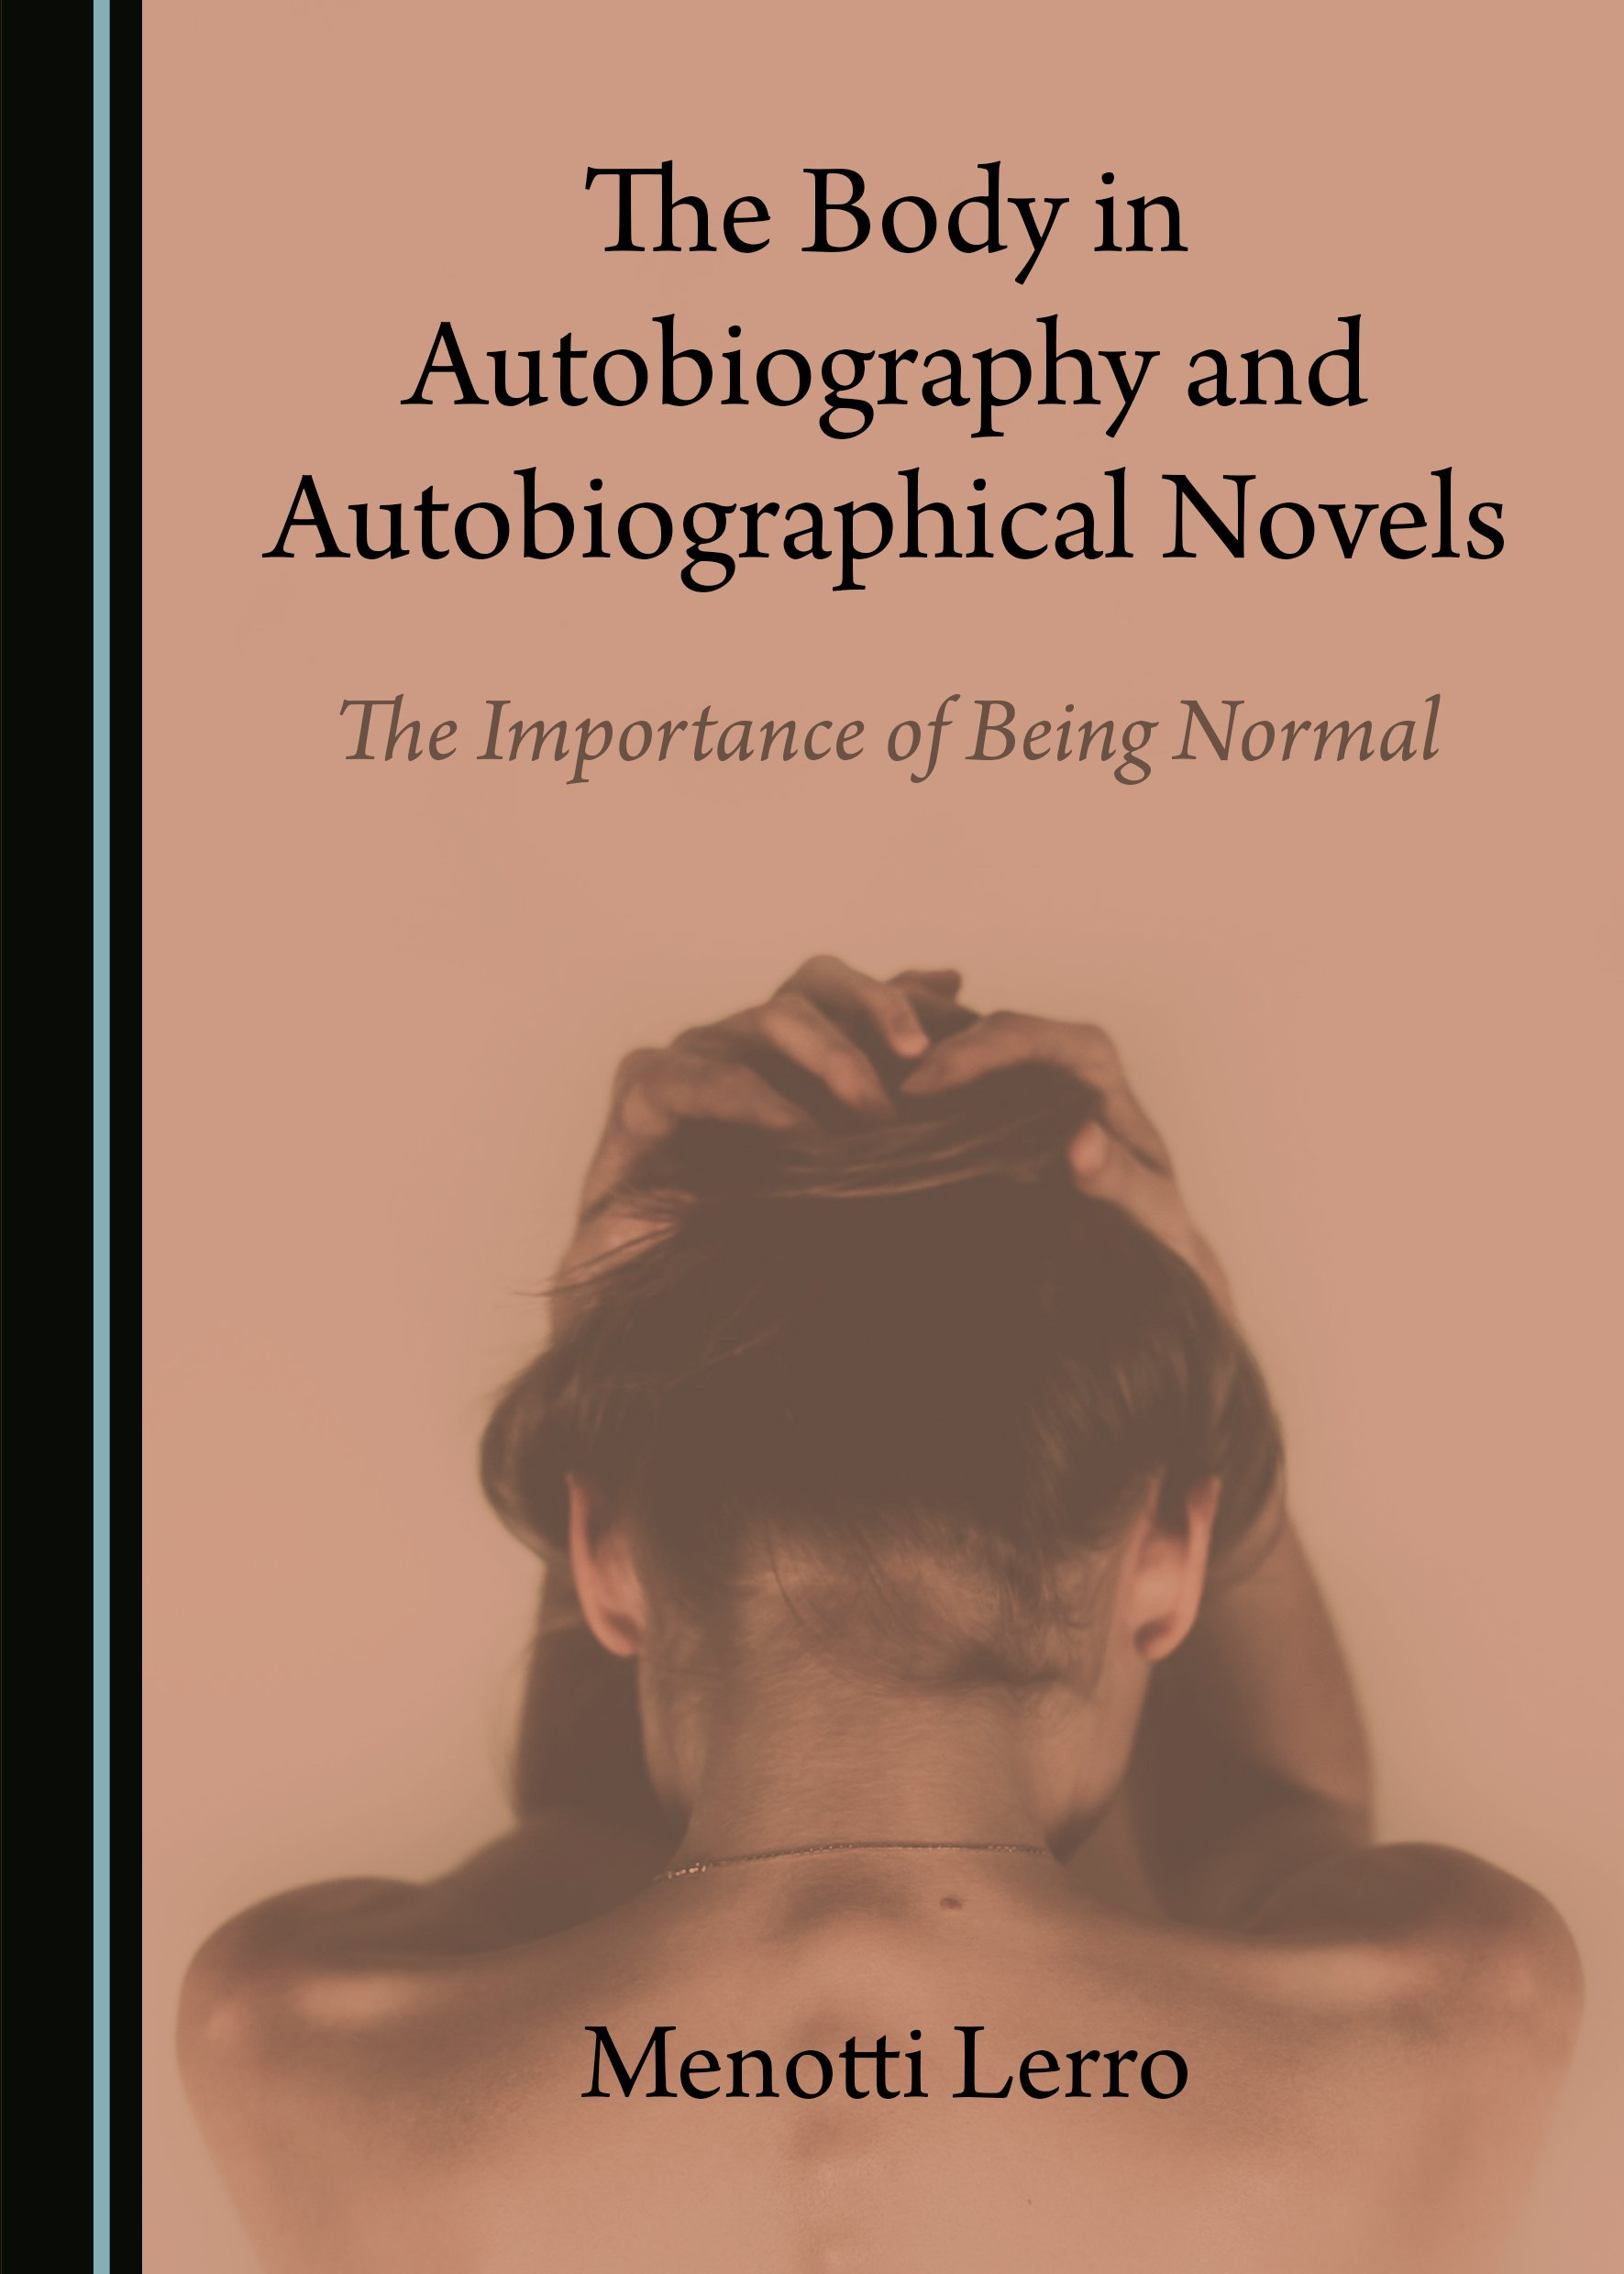 The Body in Autobiography and Autobiographical Novels: The Importance of Being Normal